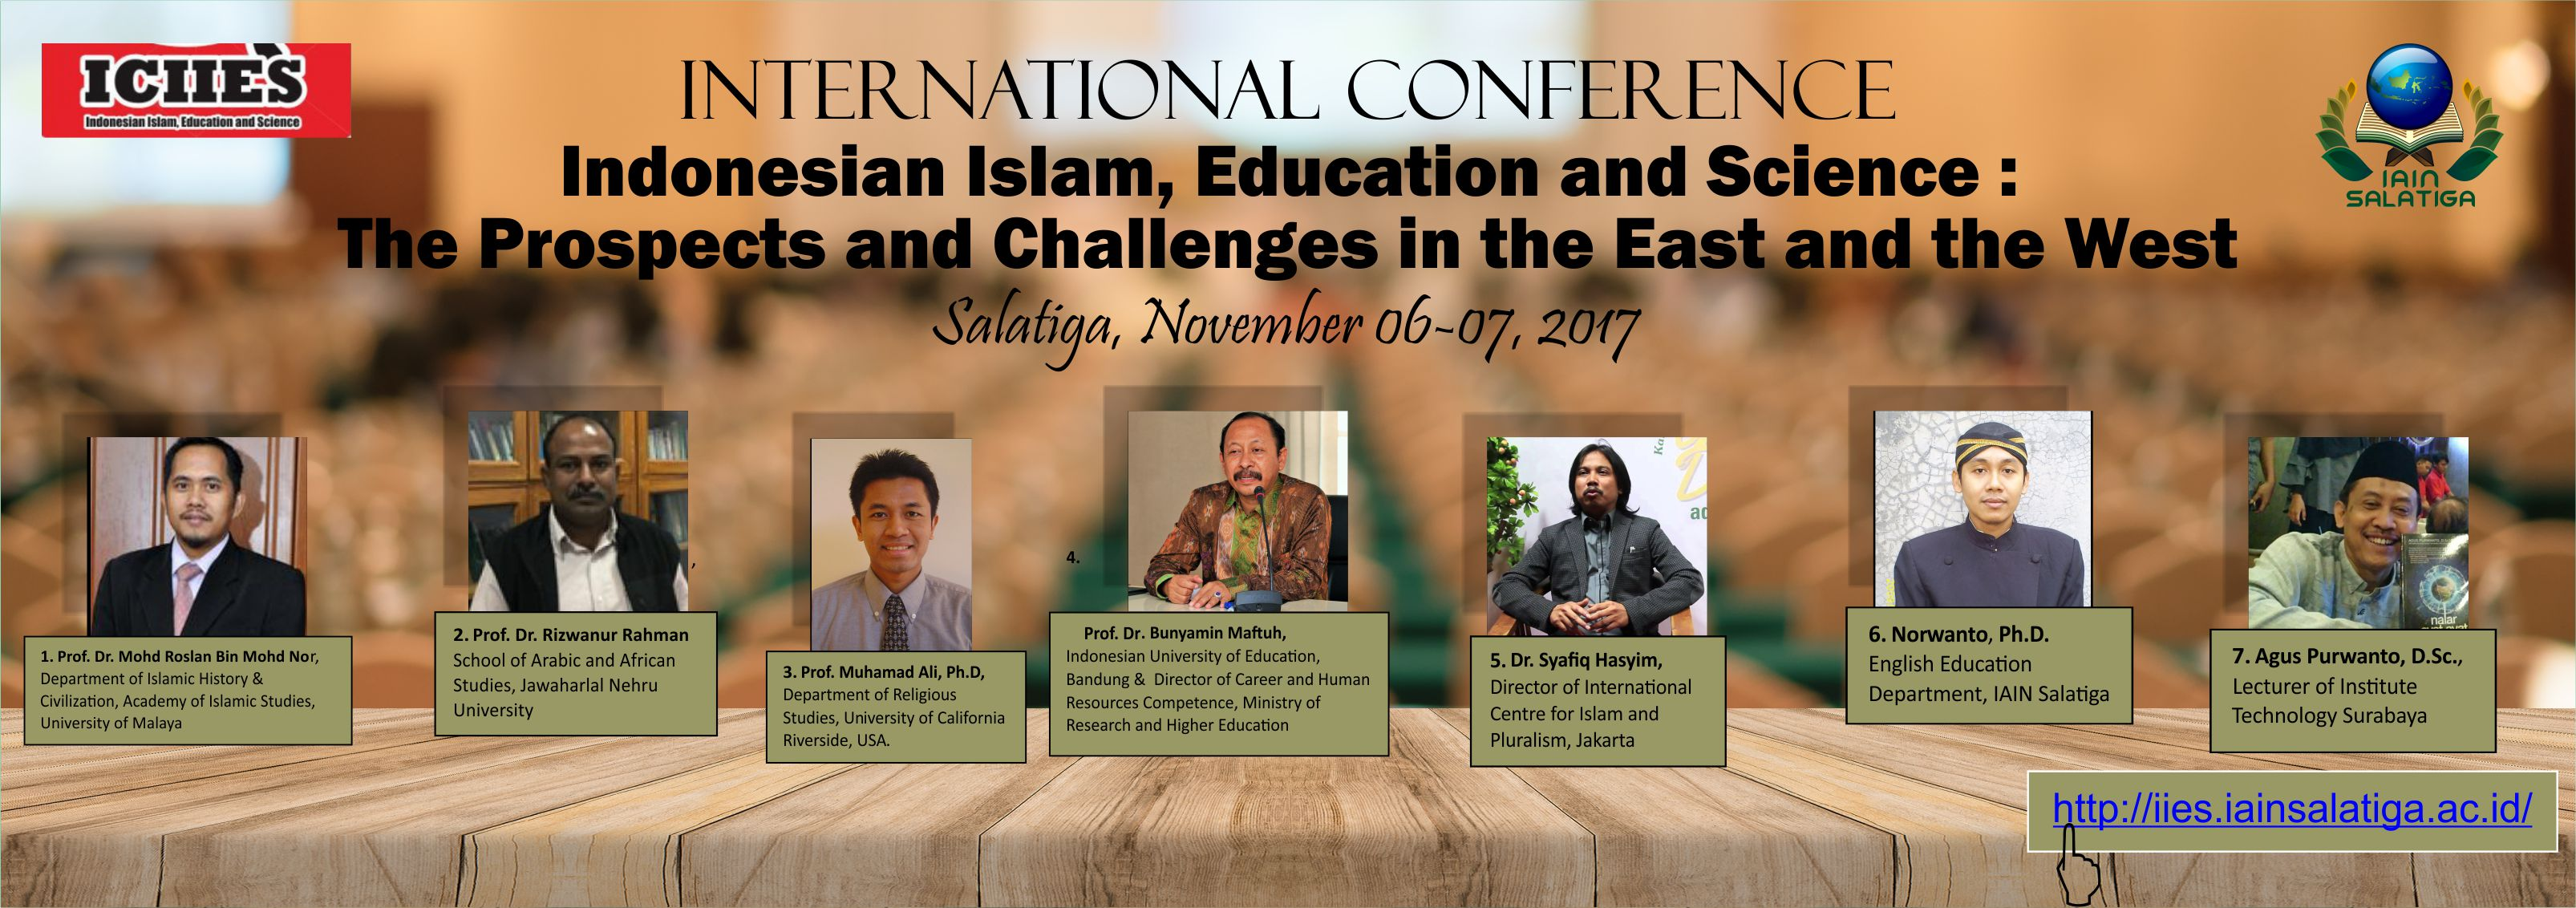 Indonesian Islam, Education and Science : The Prospects and Challenges in the East and the West